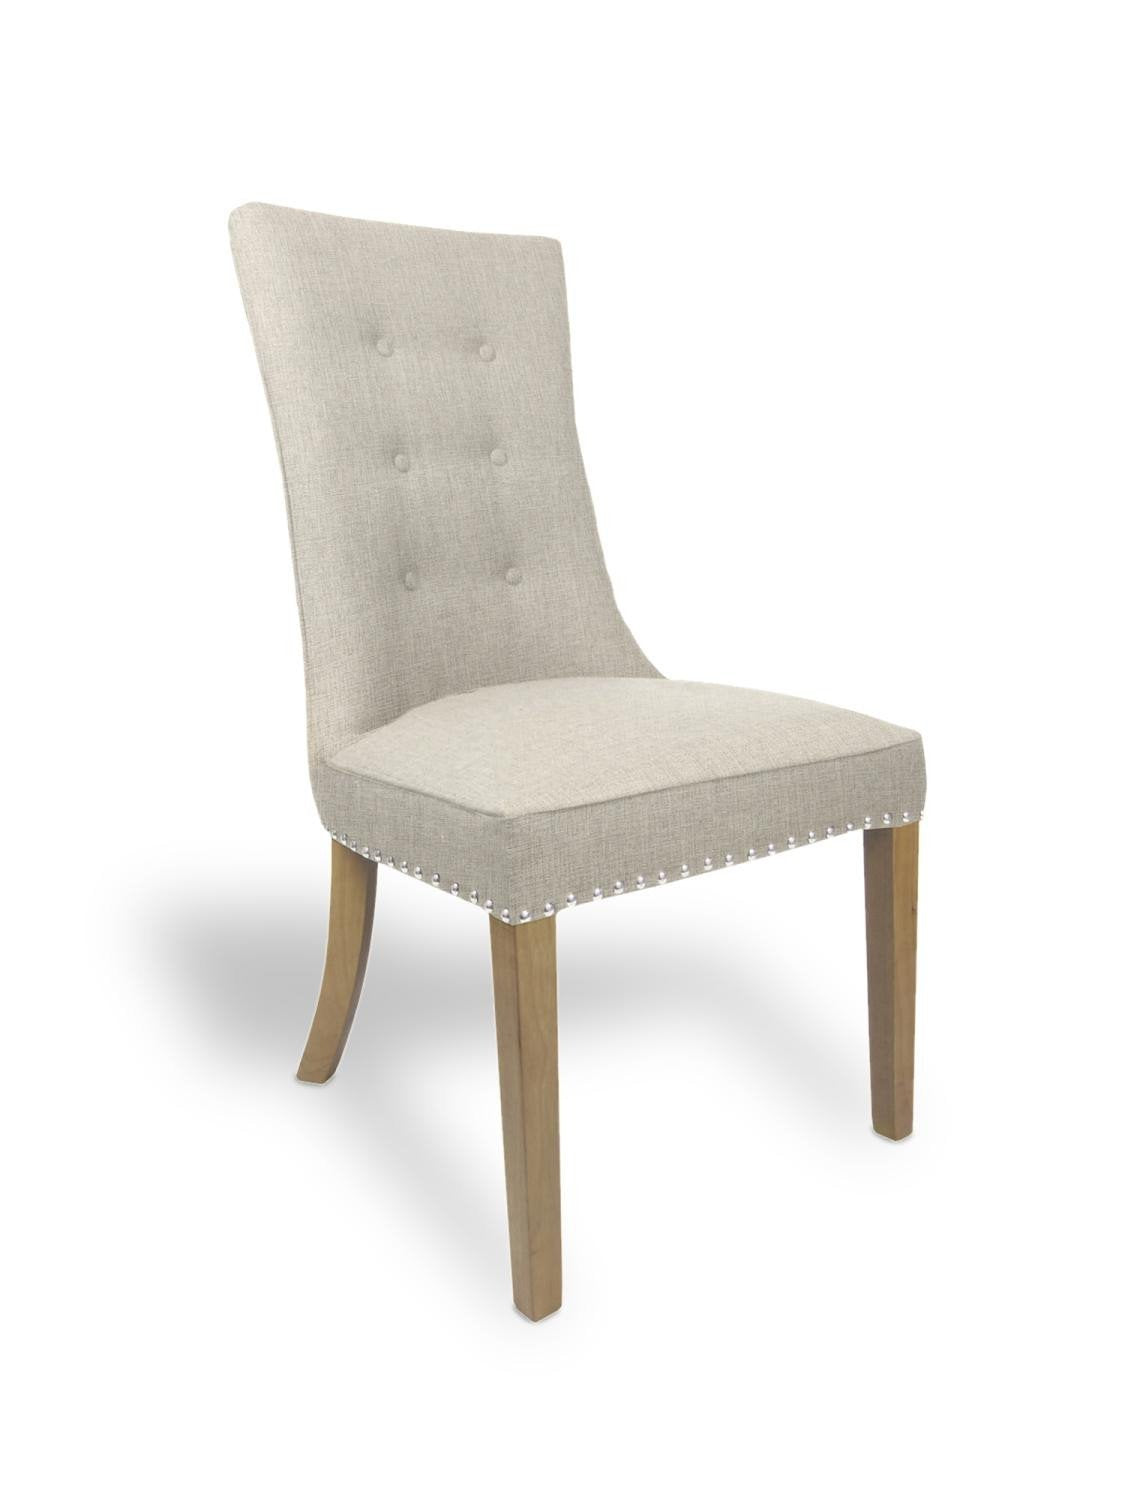 Newbury Natural Fabric Dining Chair-fabric dining chairs-shankar-GoFurn Furniture Store Kent